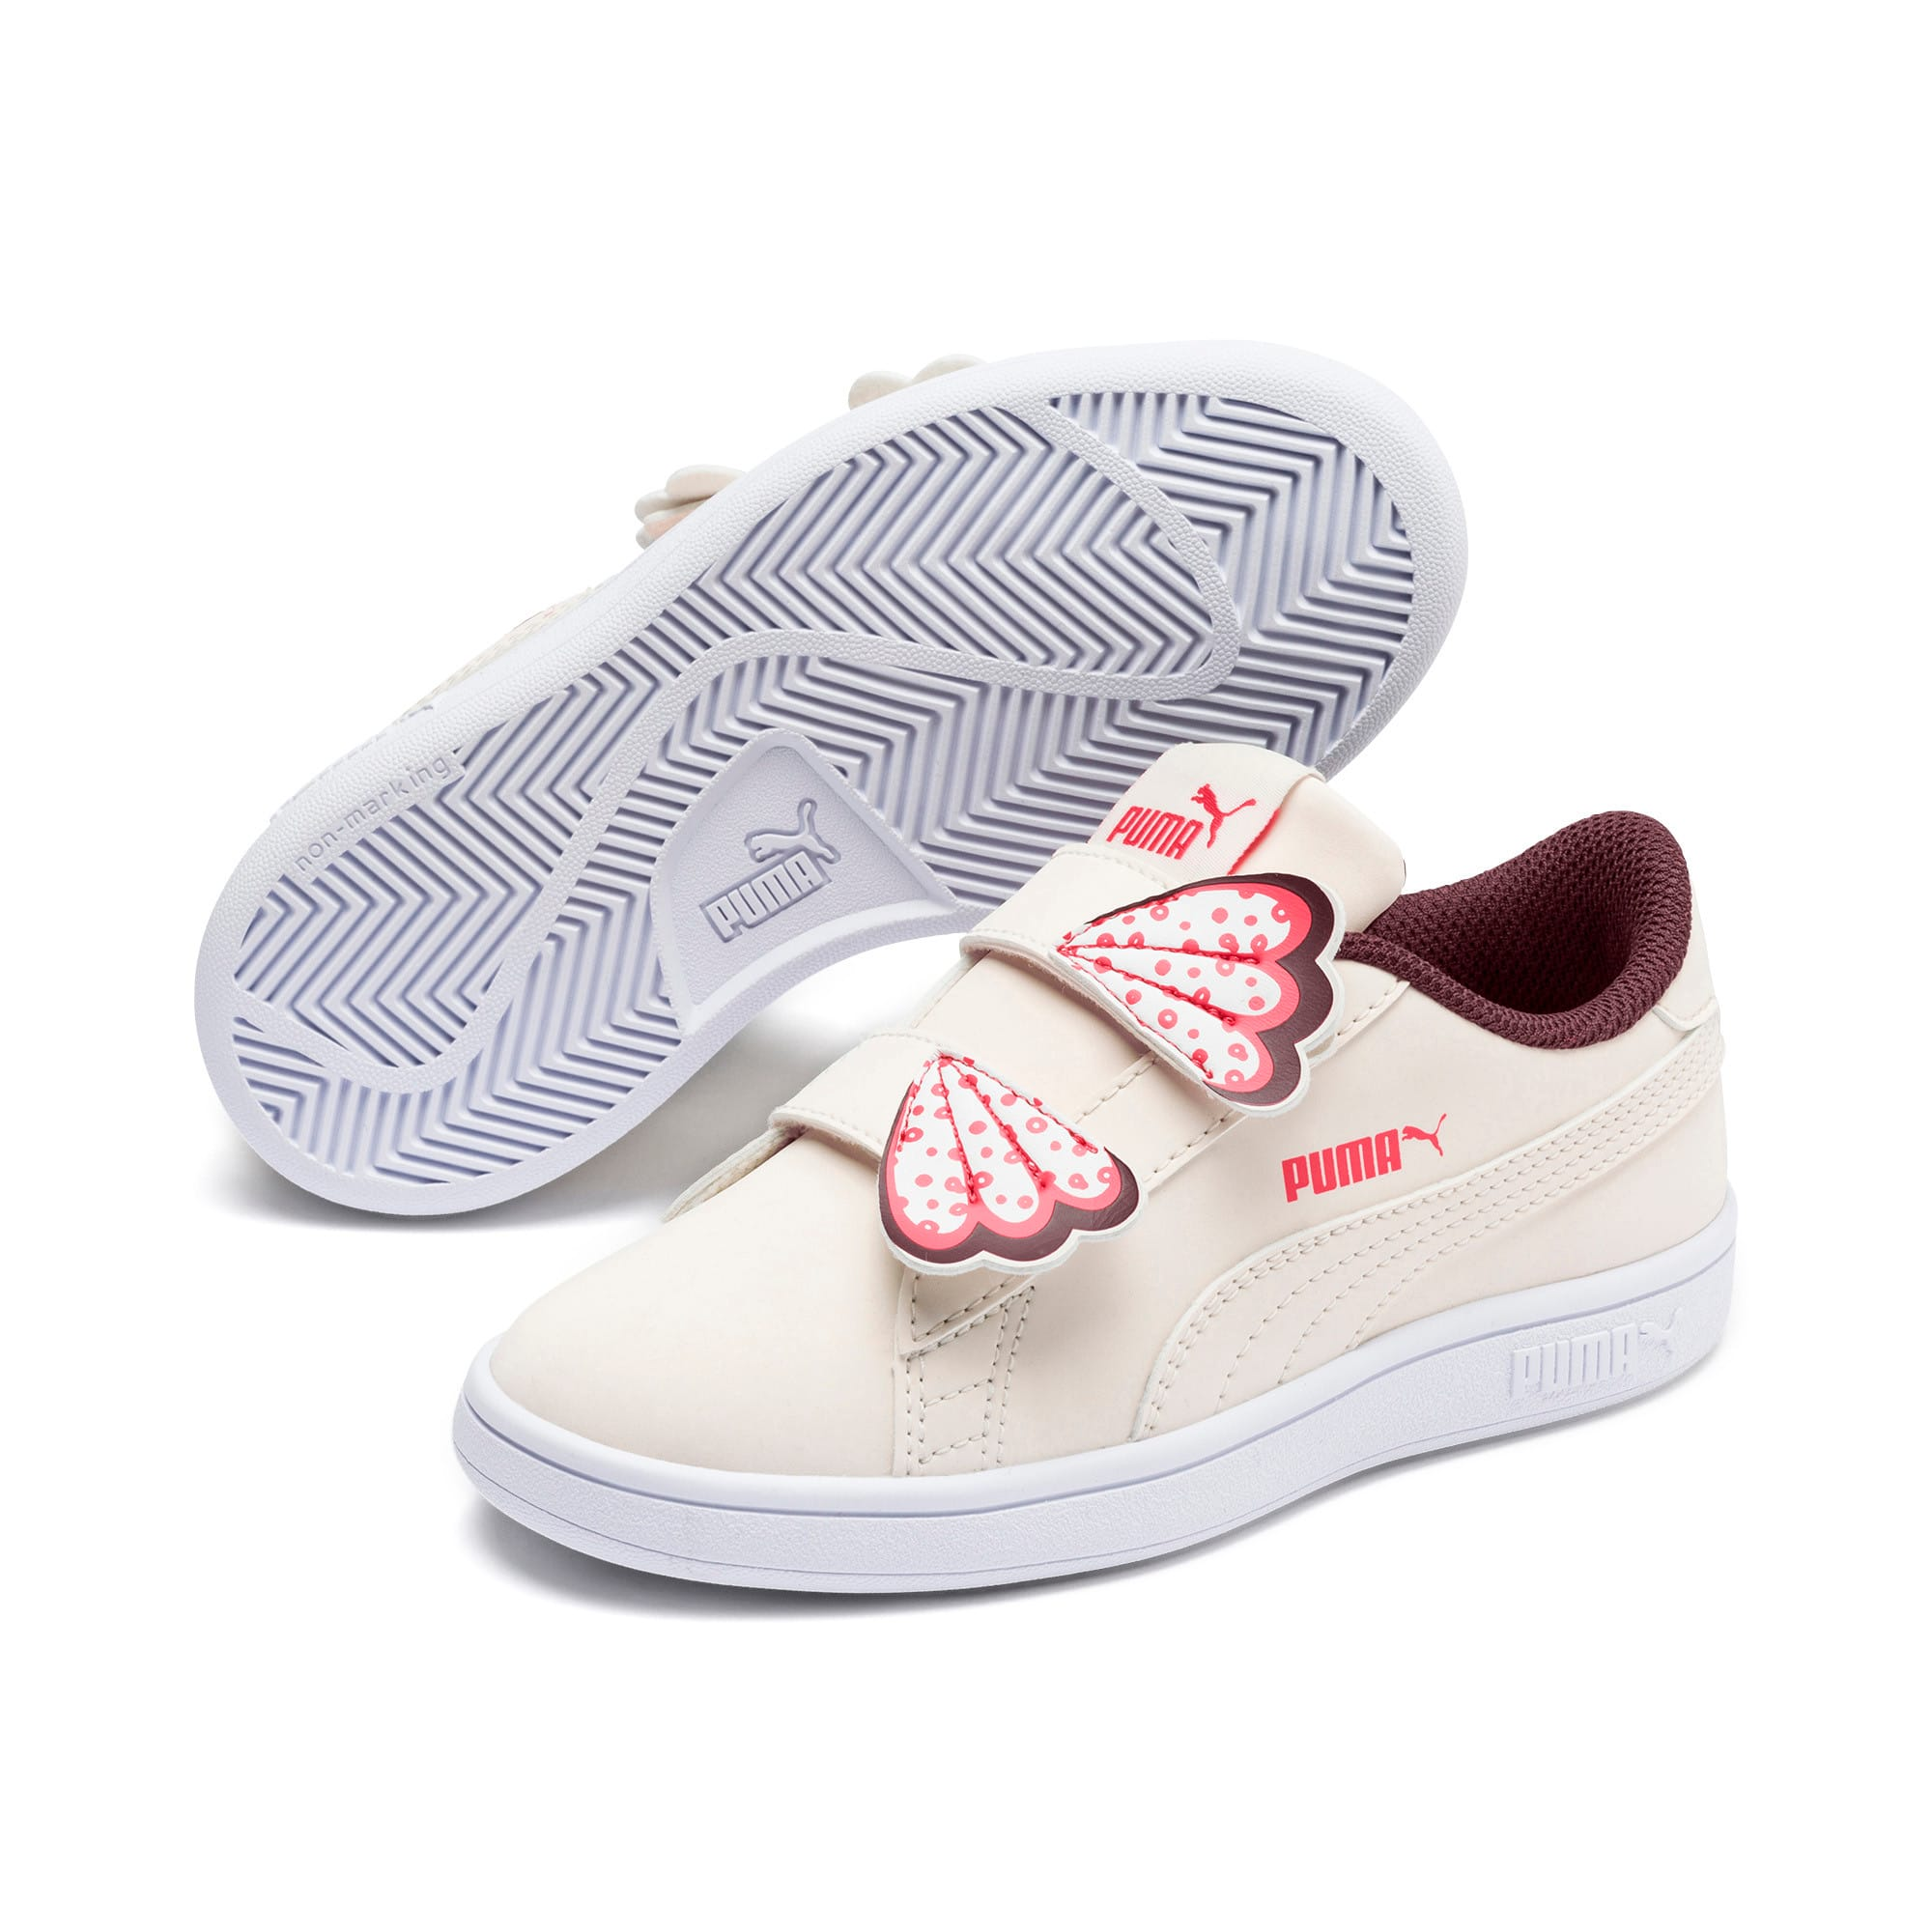 Thumbnail 2 of PUMA Smash v2 Butterfly Kid Girls' Trainers, Pastel Parchment-Vineyard, medium